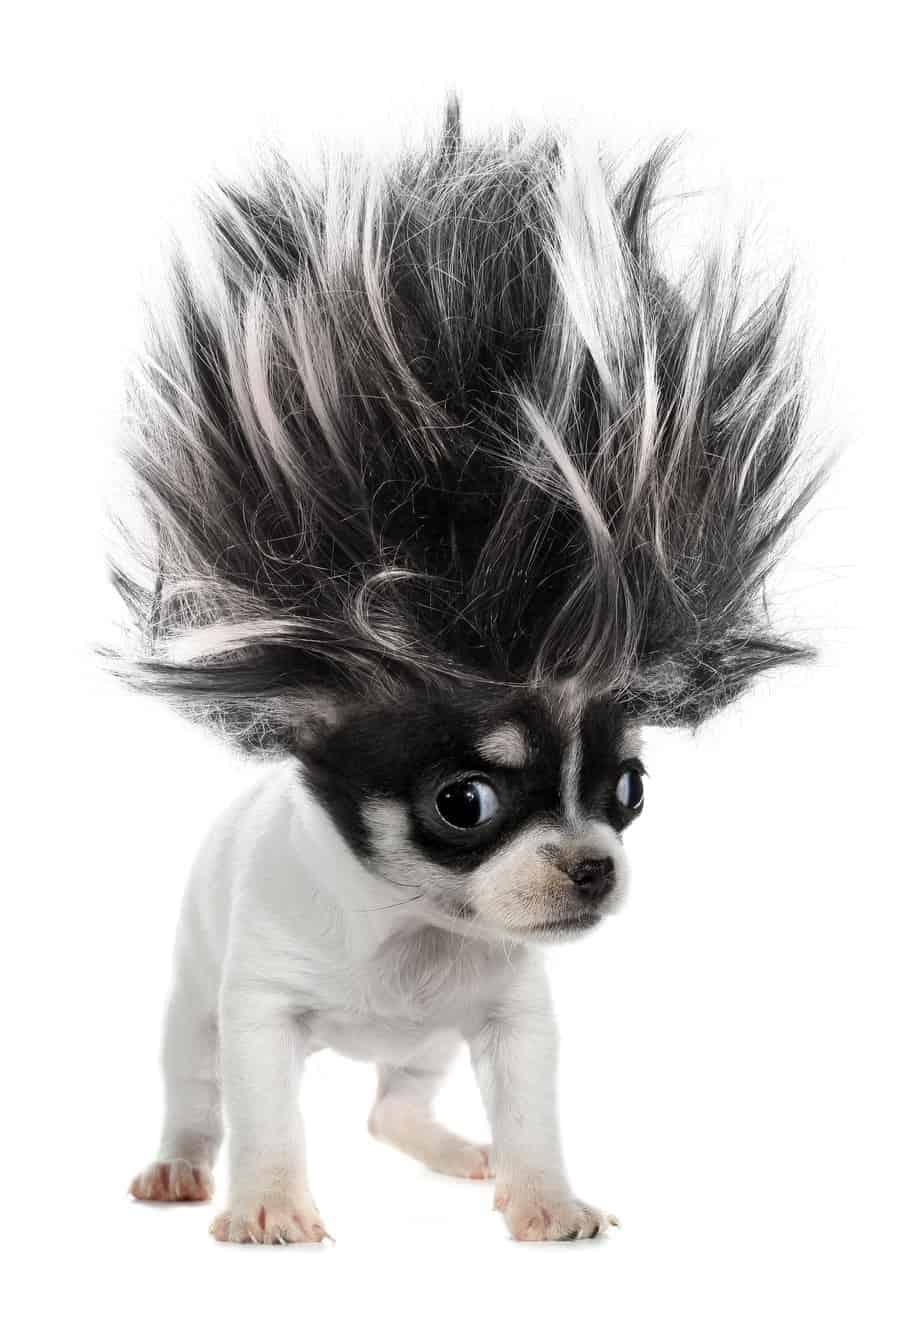 chihuahua with crazy hair. Use a pet hair vacuum to control dog hair.